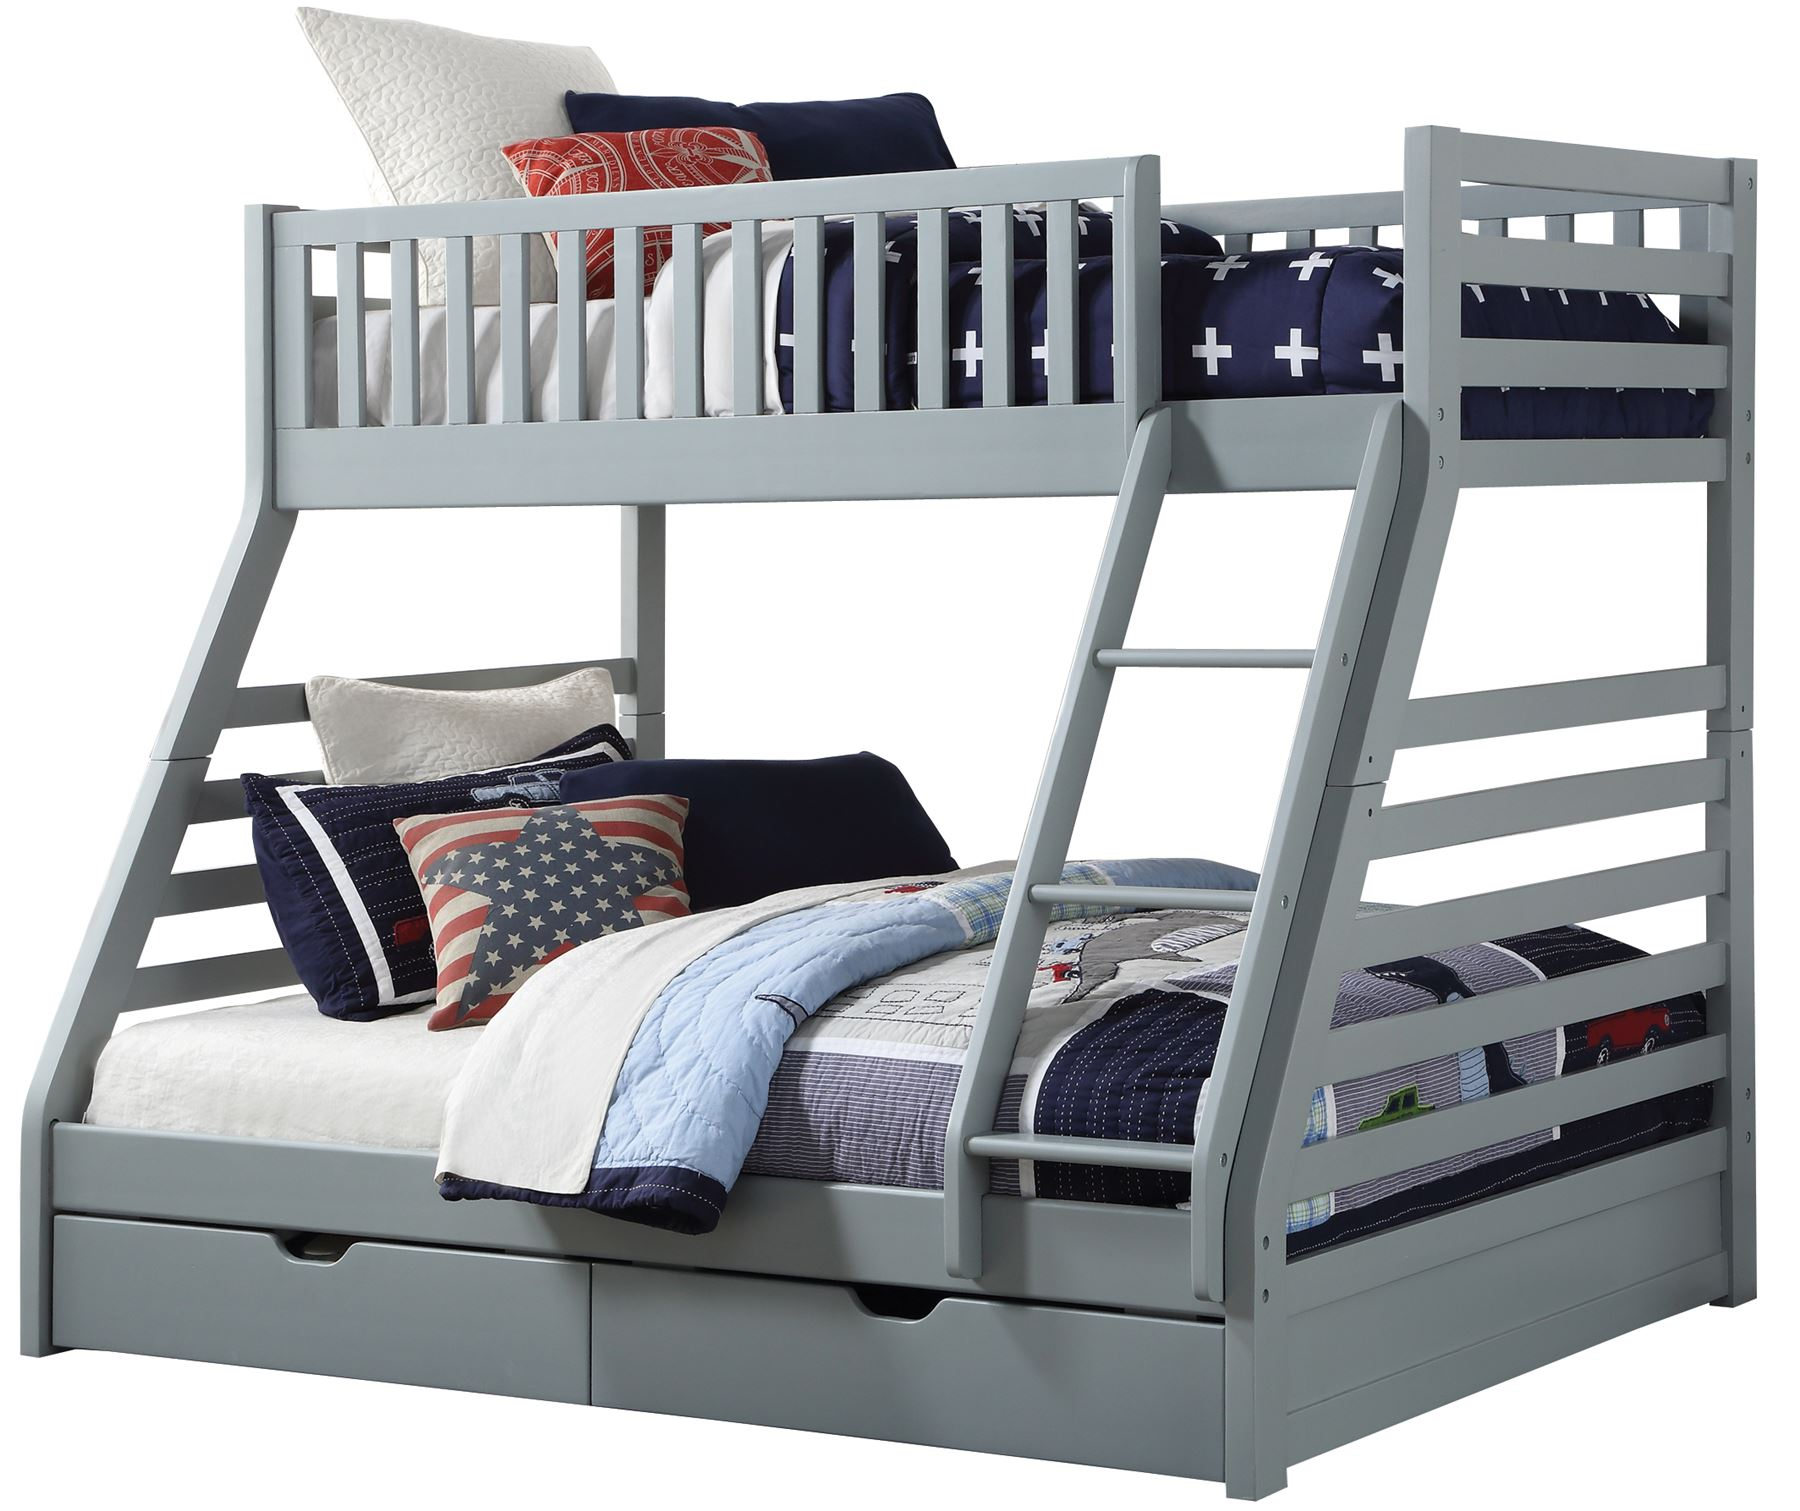 sweet dreams states wooden triple sleeper bunk bed frame grey wood with drawers 712383008923 ebay. Black Bedroom Furniture Sets. Home Design Ideas